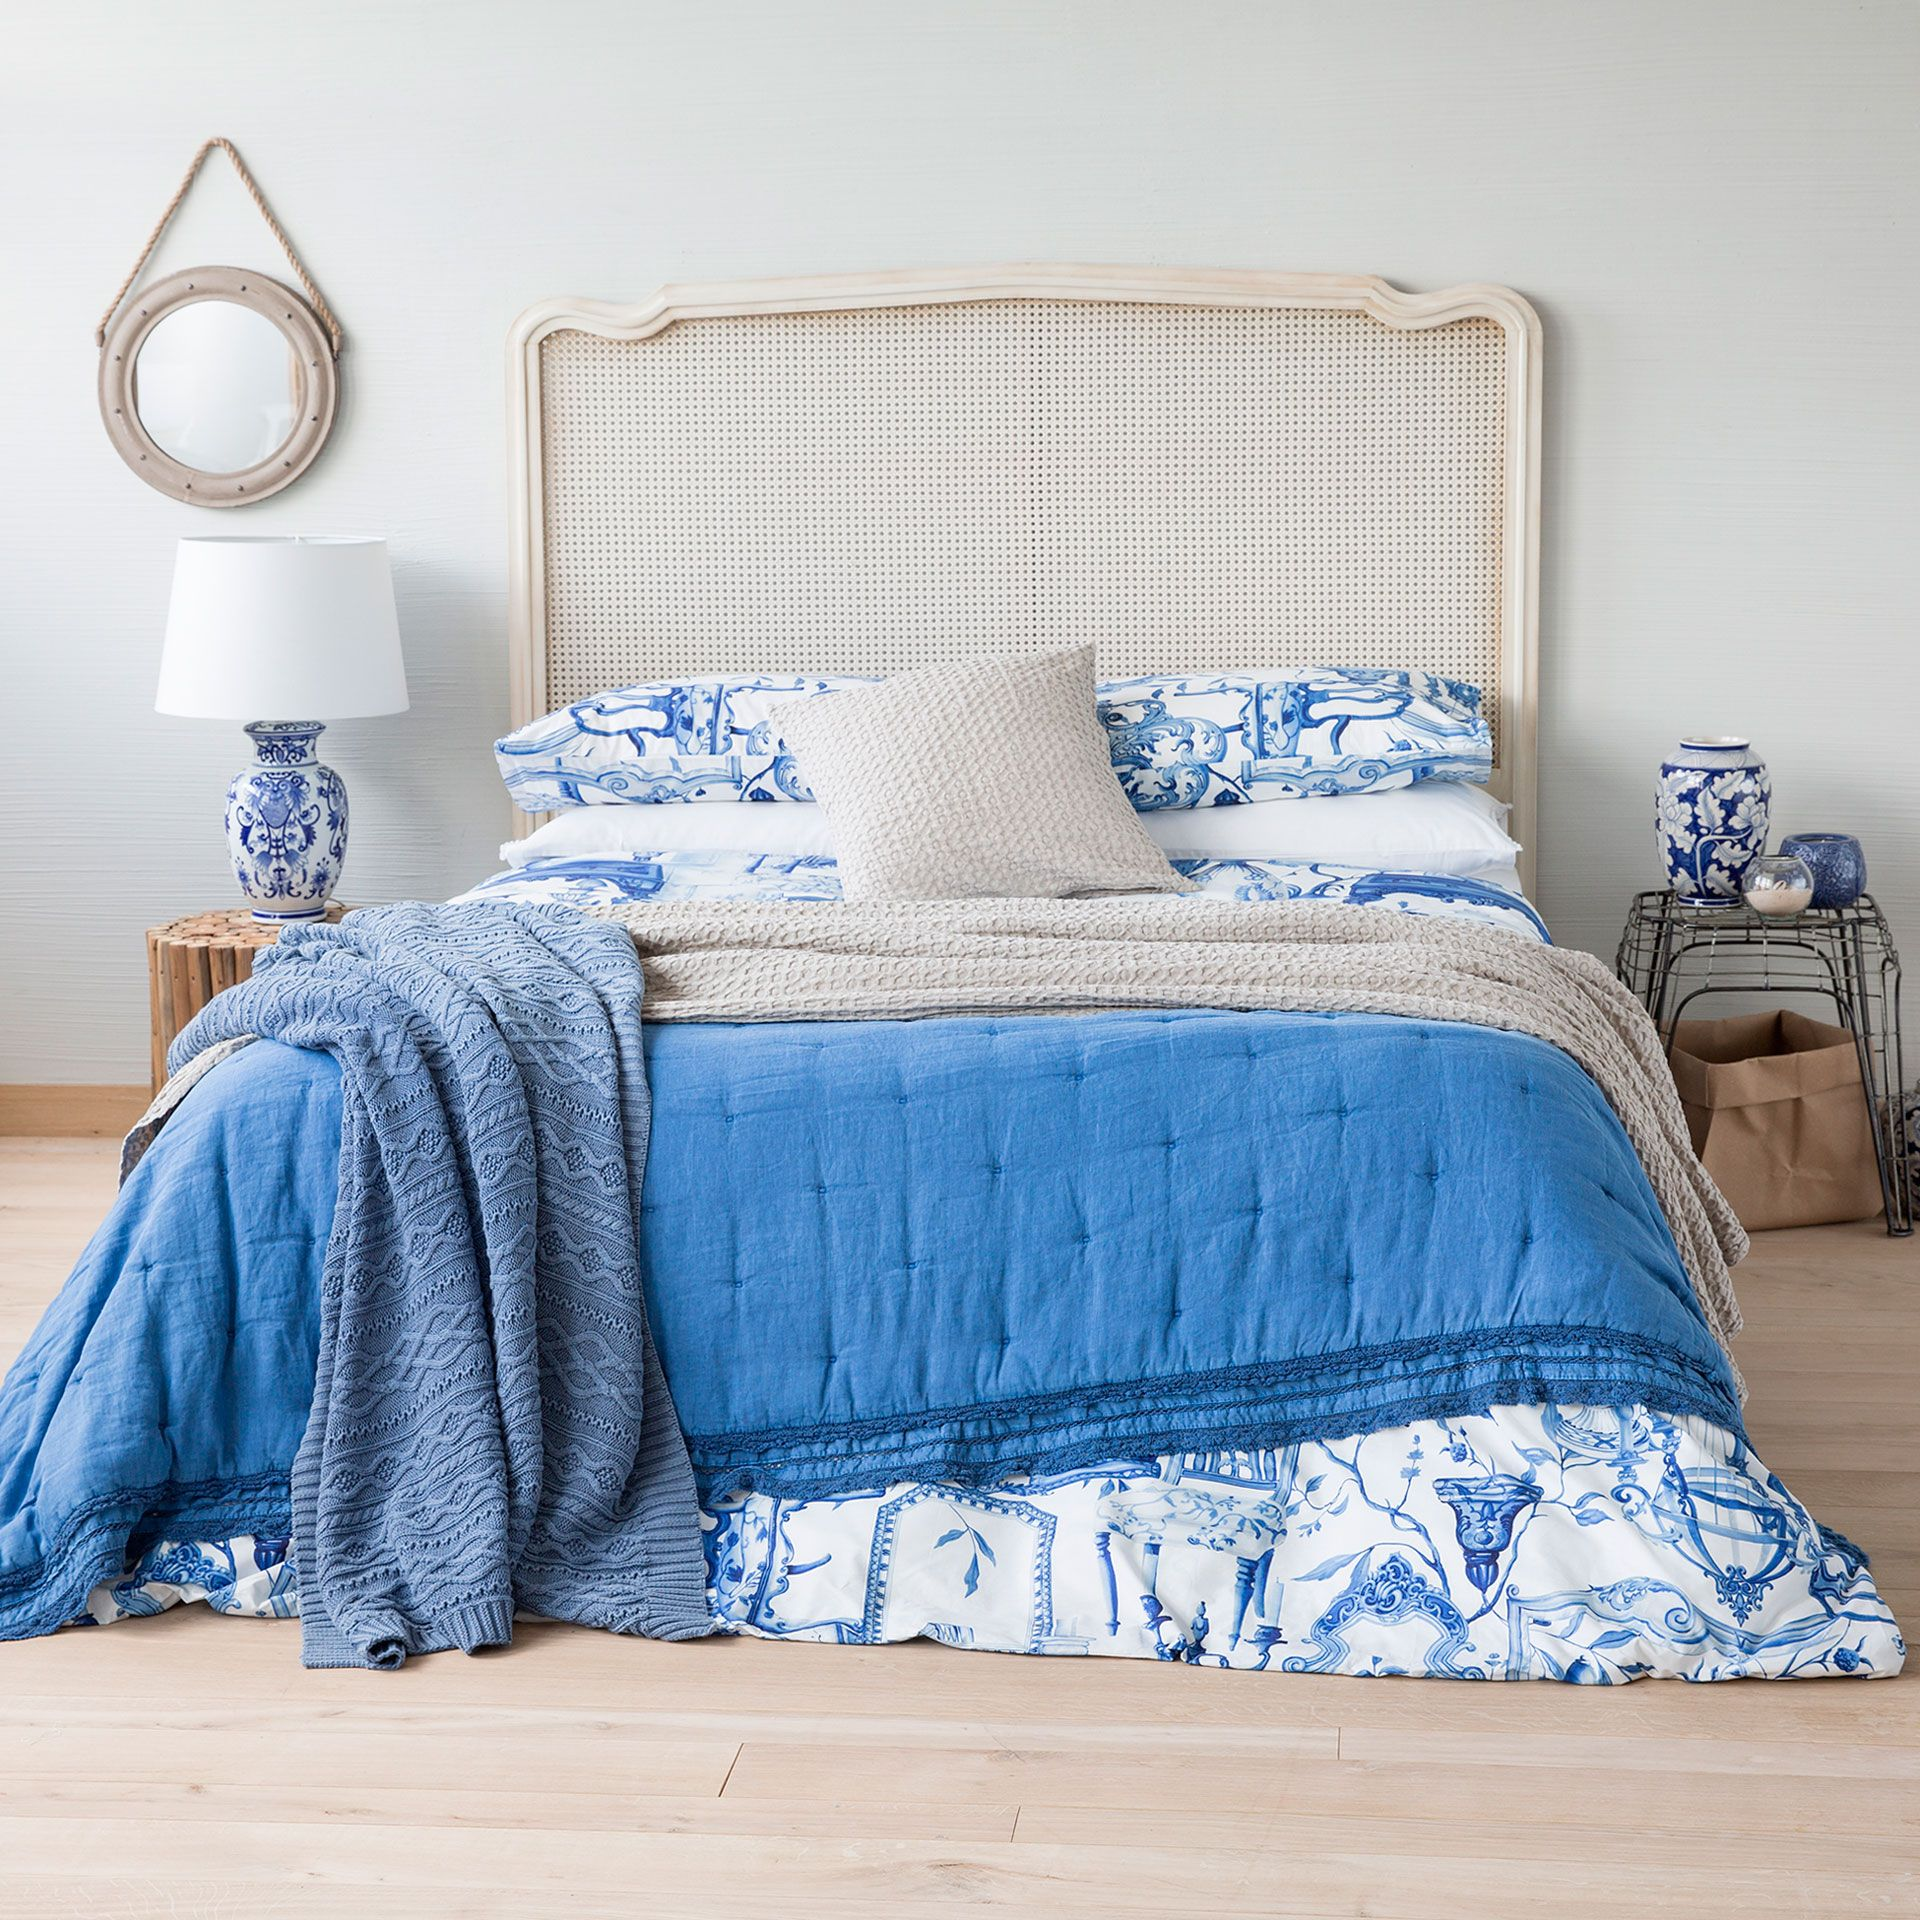 Blue washed linen quilt with lace trim - Quilts - Bedroom ...